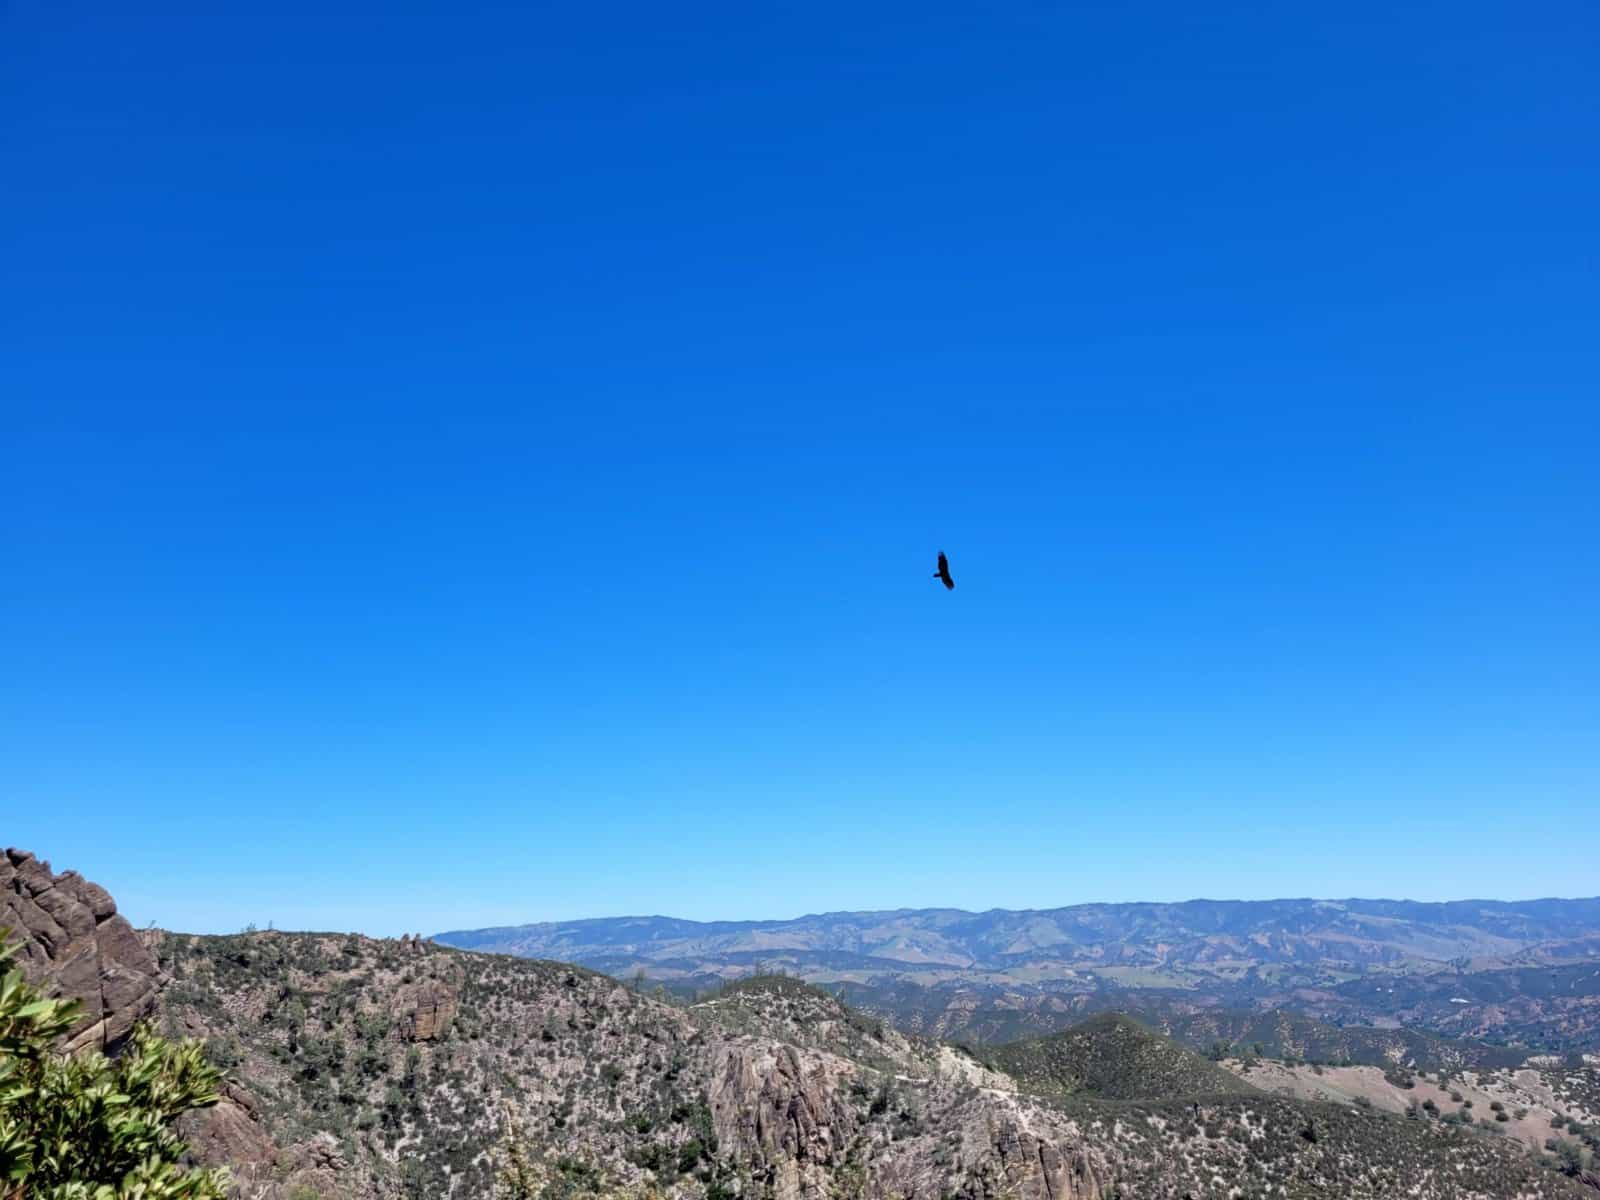 hiking among the raptors at pinnacles national park despite my fear of heights